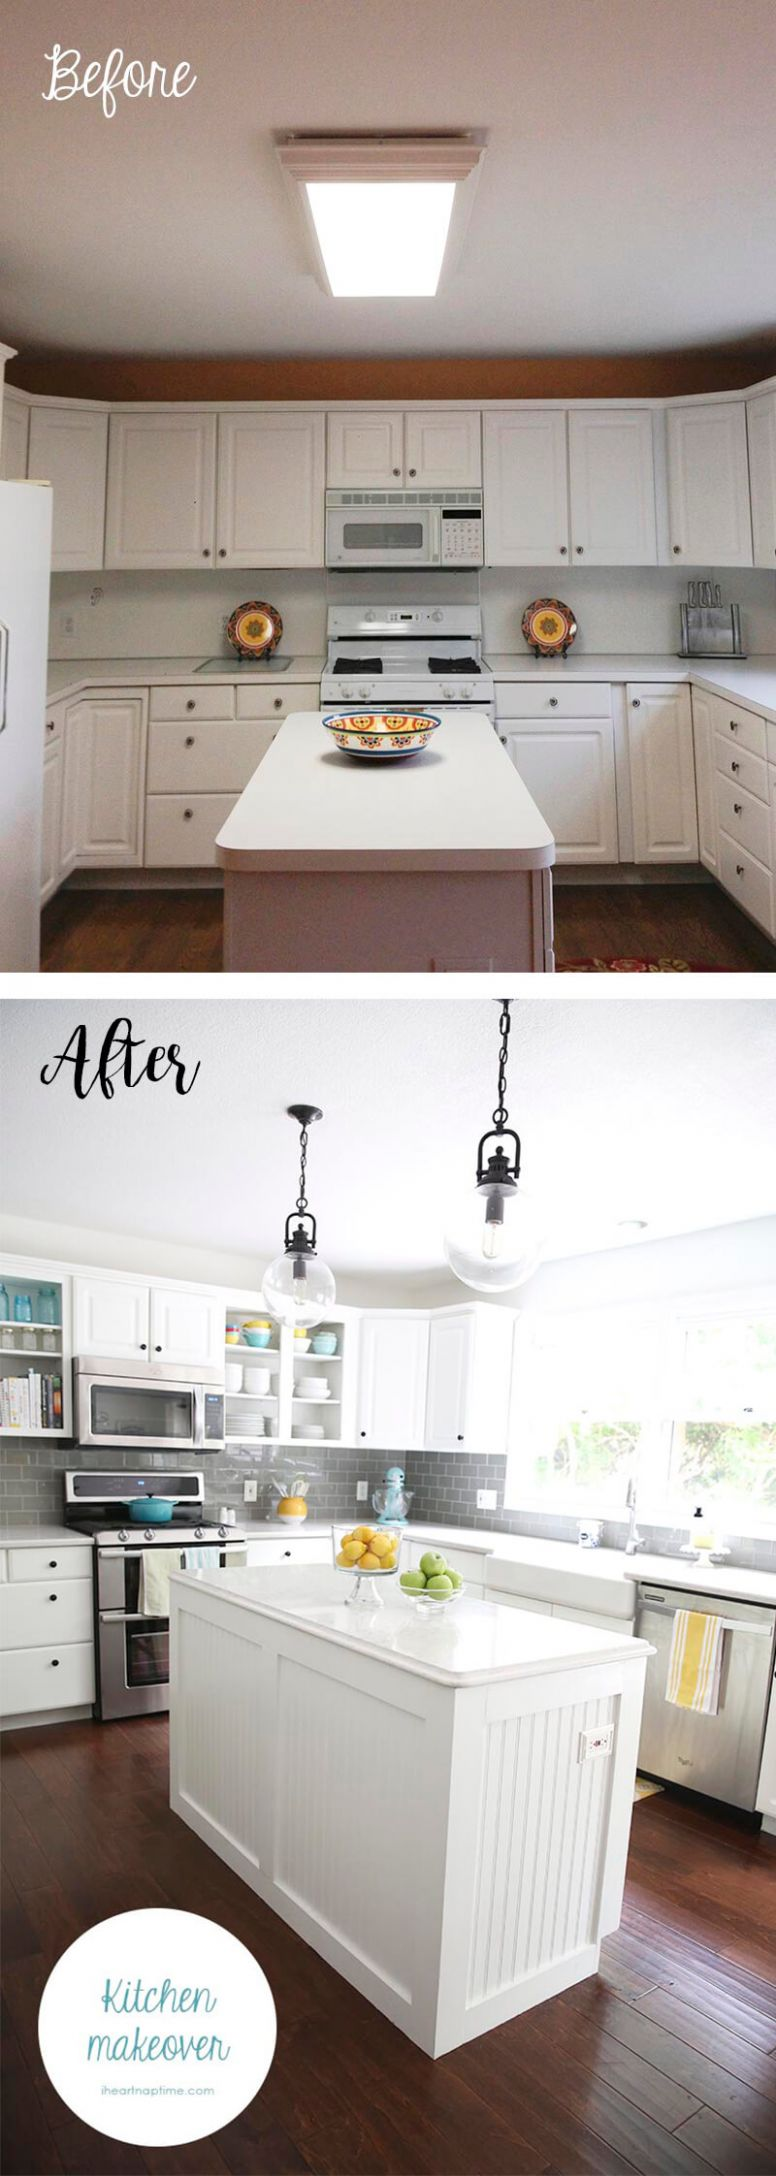 8+ Before and After: Budget Friendly Kitchen Makeover Ideas and ...